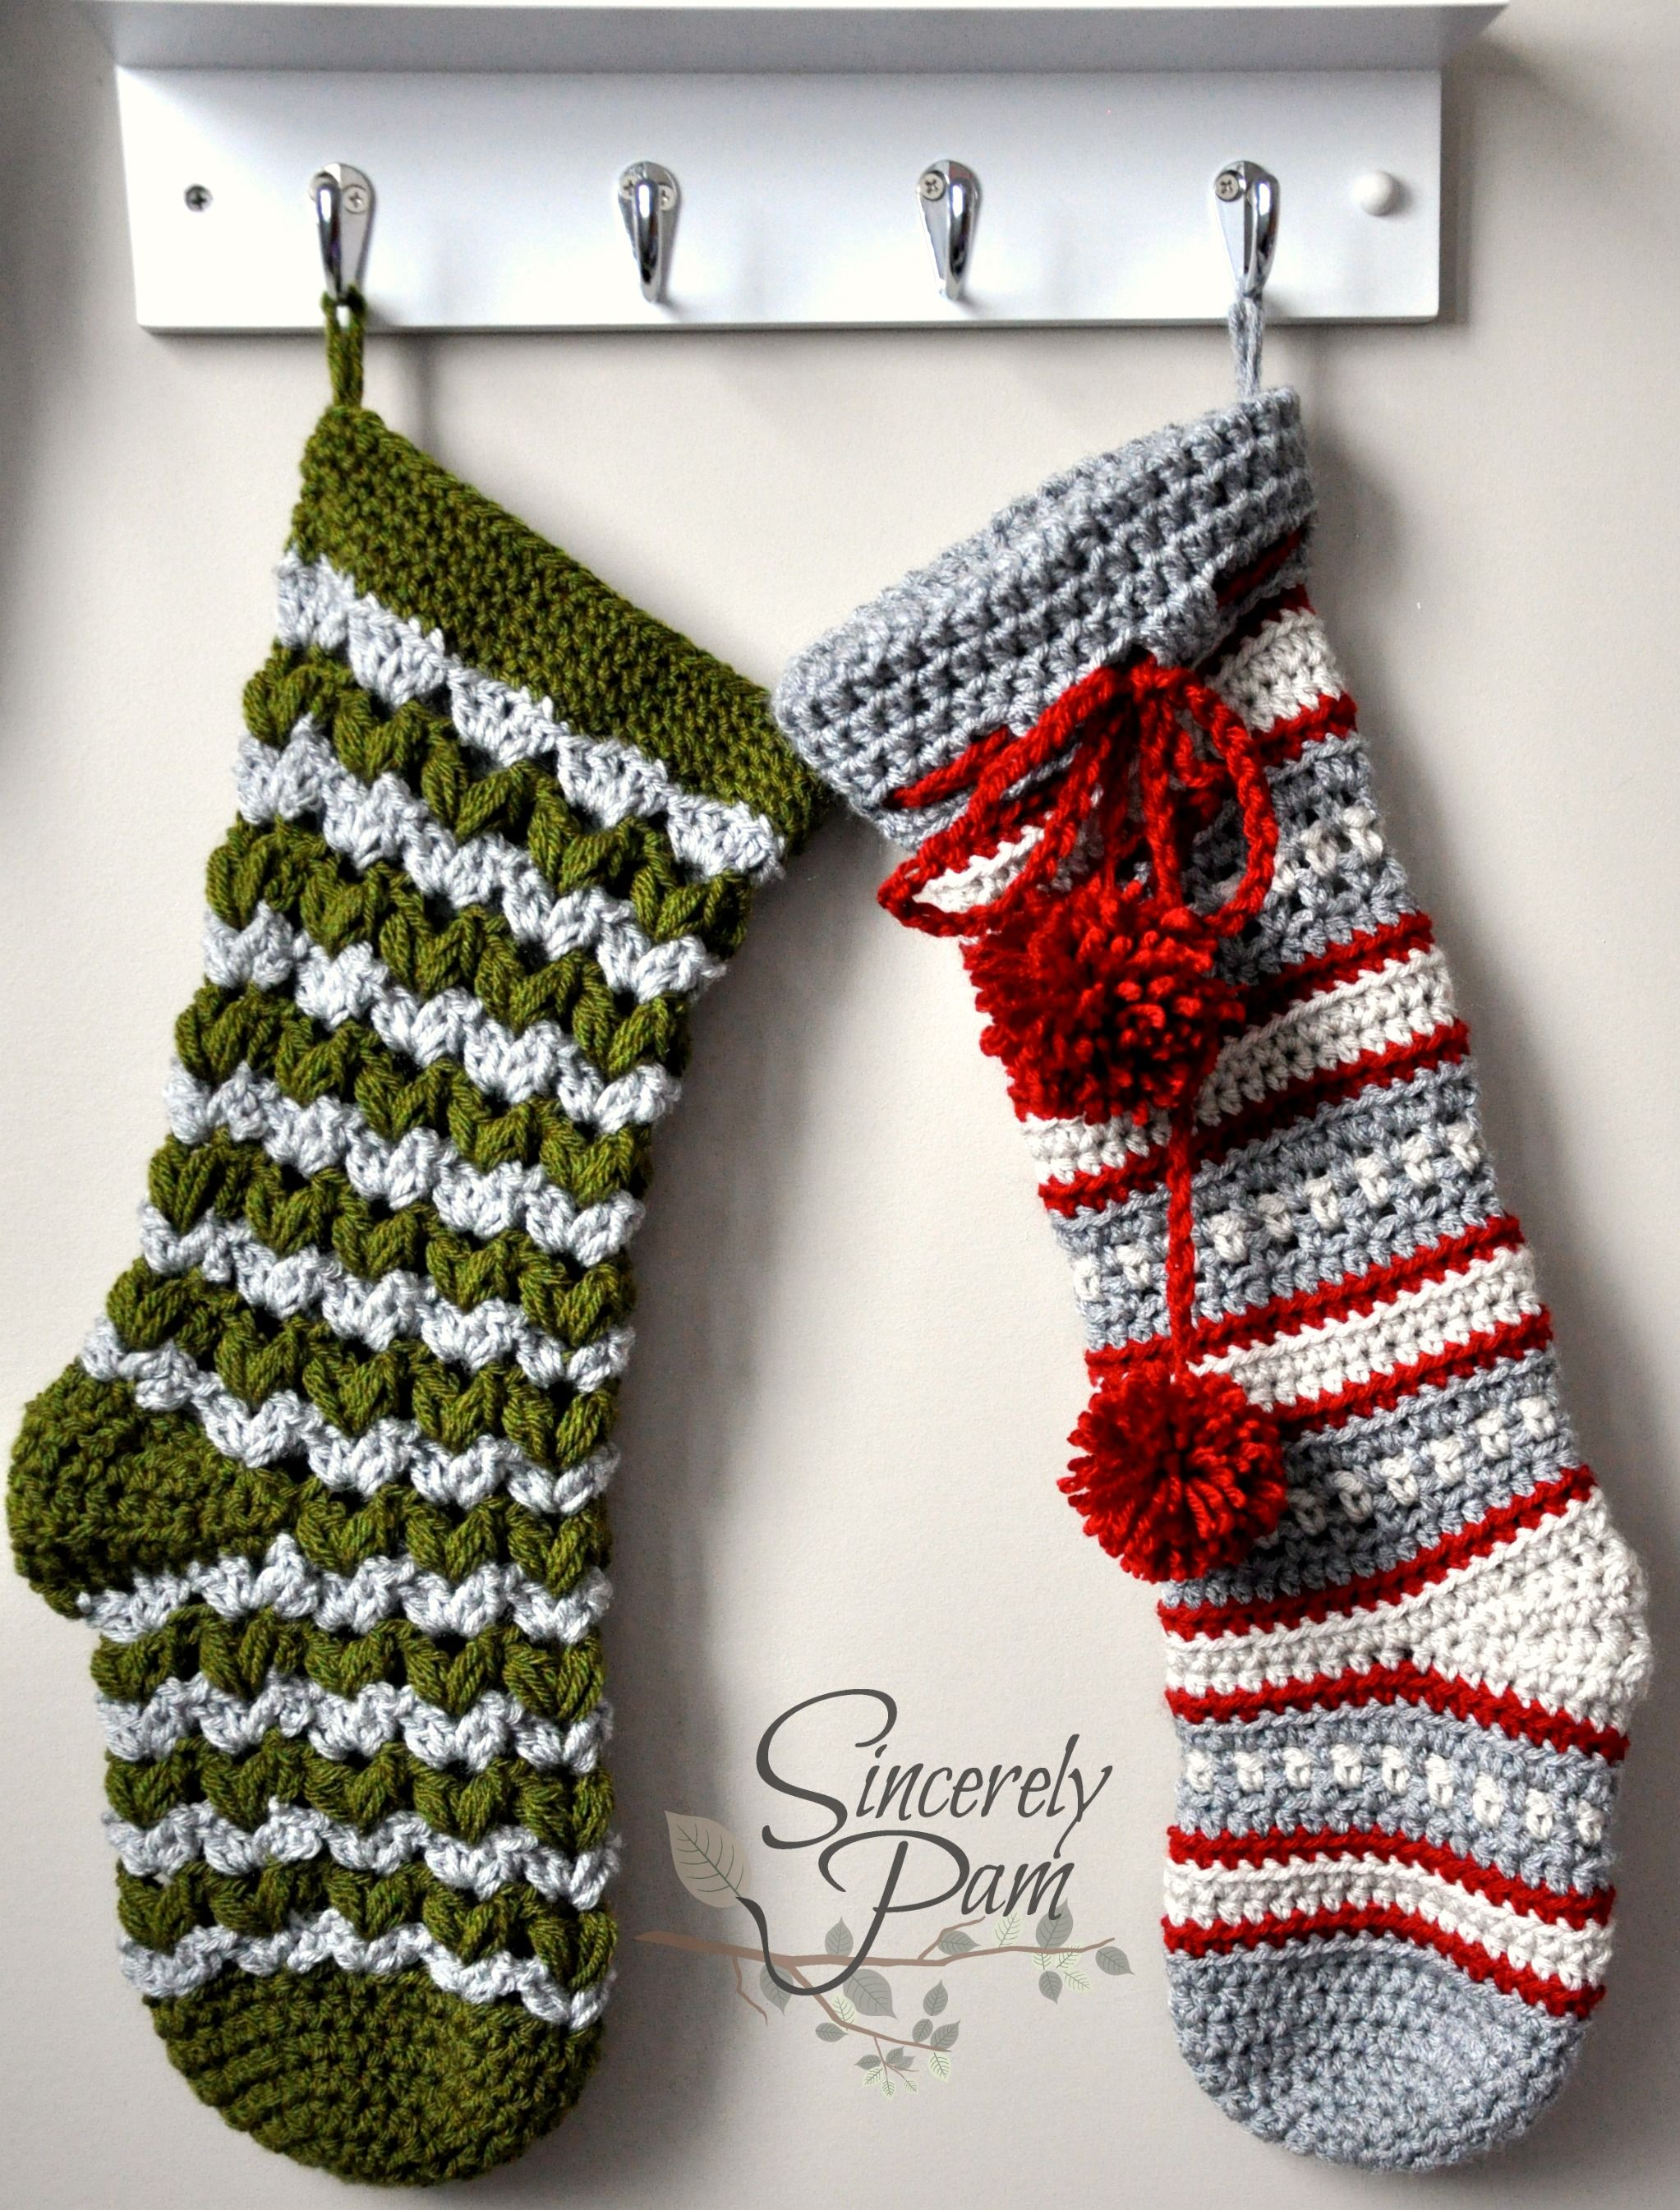 victoria and dylan christmas stocking crochet patterns by sincerelypam crochet christmas stockings crochet - Crochet Christmas Stockings